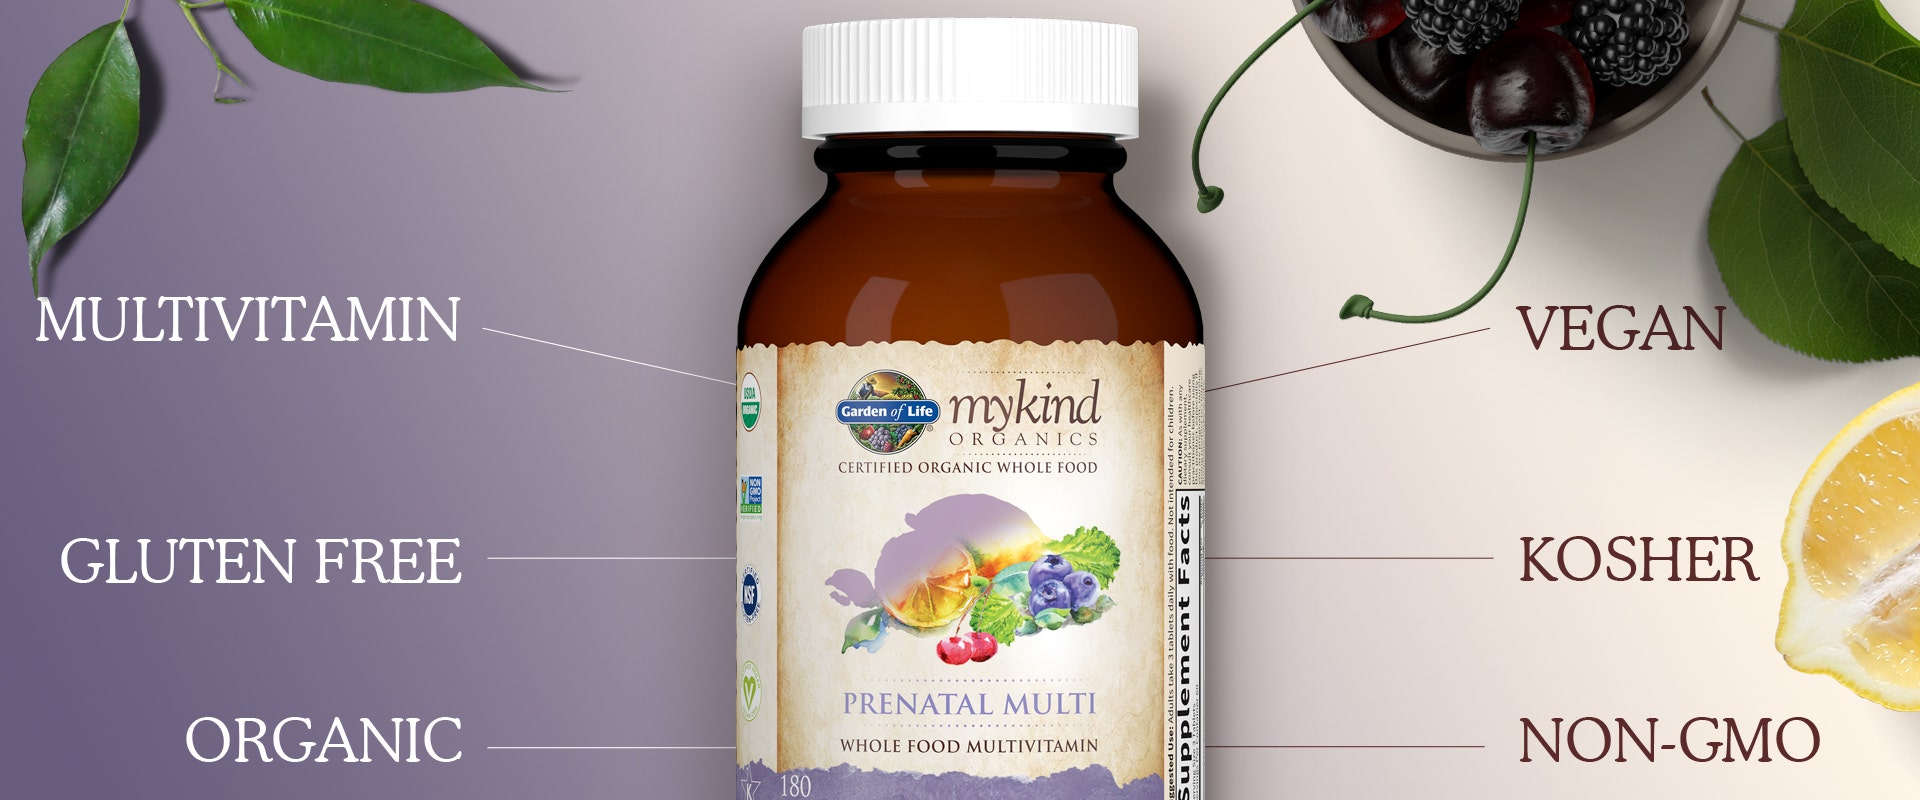 Vegan Prenatal Once Daily by mykind Organics of Garden of Life